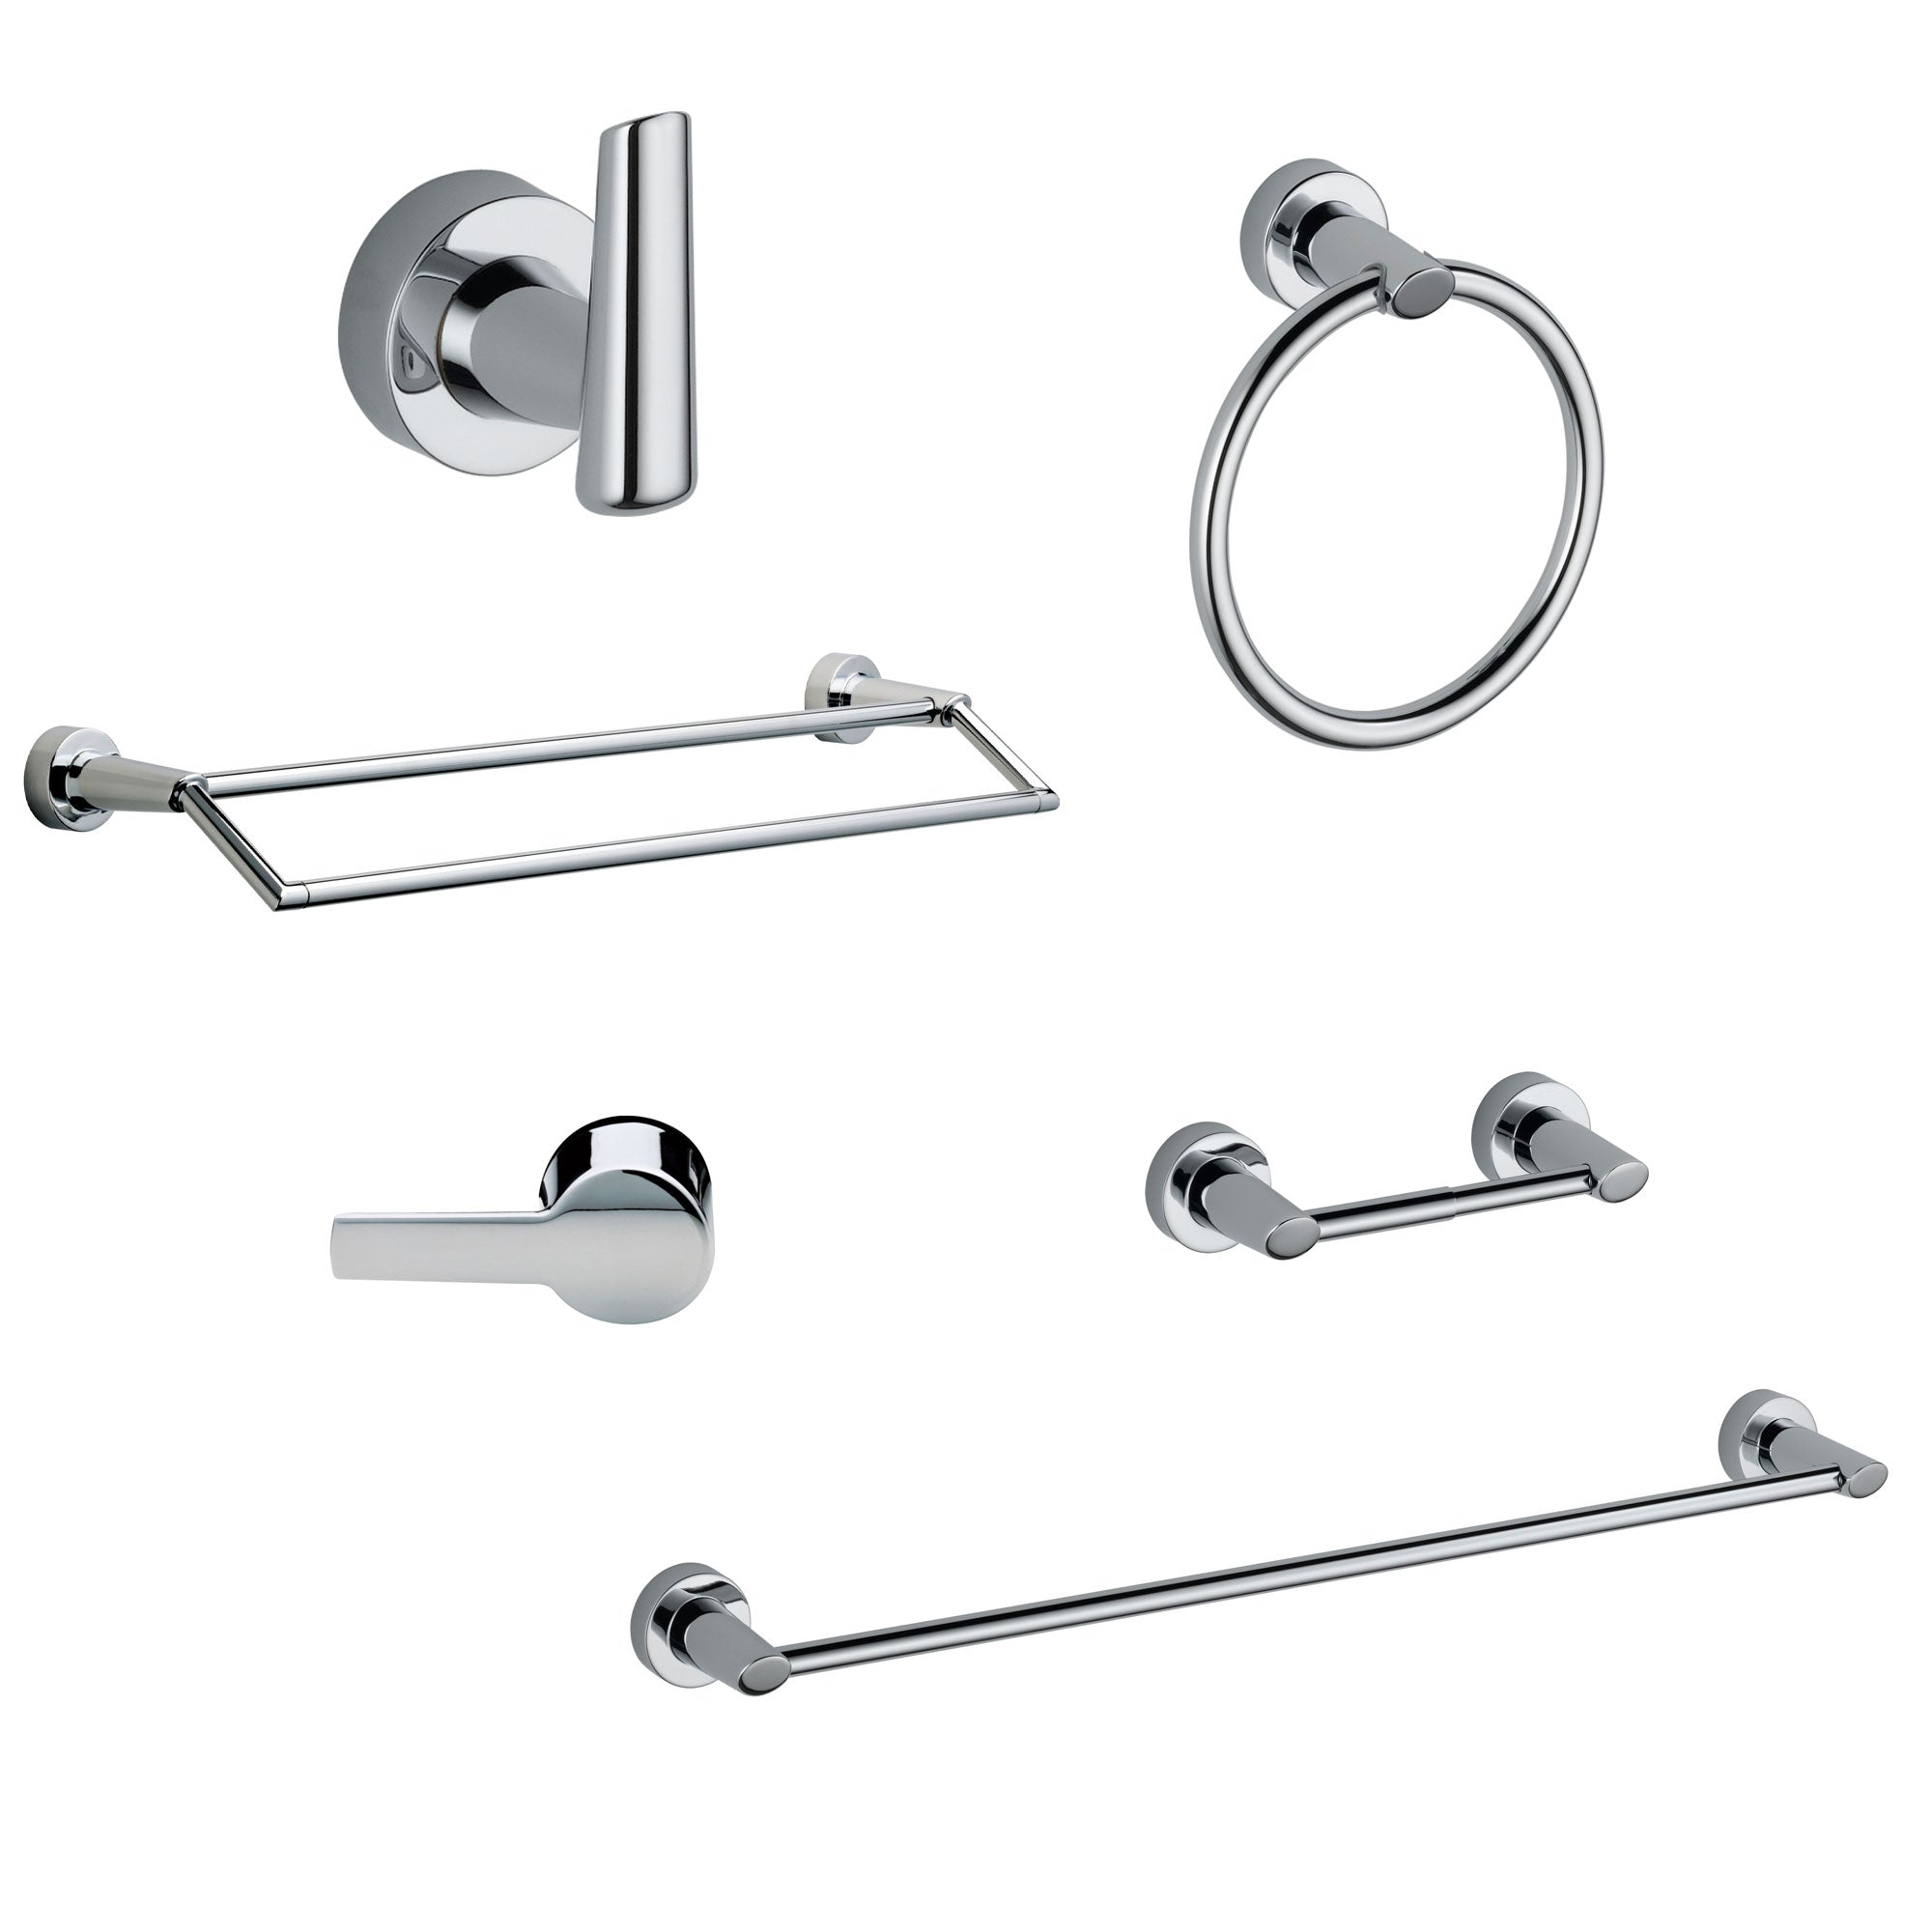 "Delta Compel Chrome DELUXE Accessory Set Includes: 24"" Towel Bar, Paper Holder, Robe Hook, Towel Ring, Tank Lever, and Double Towel Bar D10073AP"